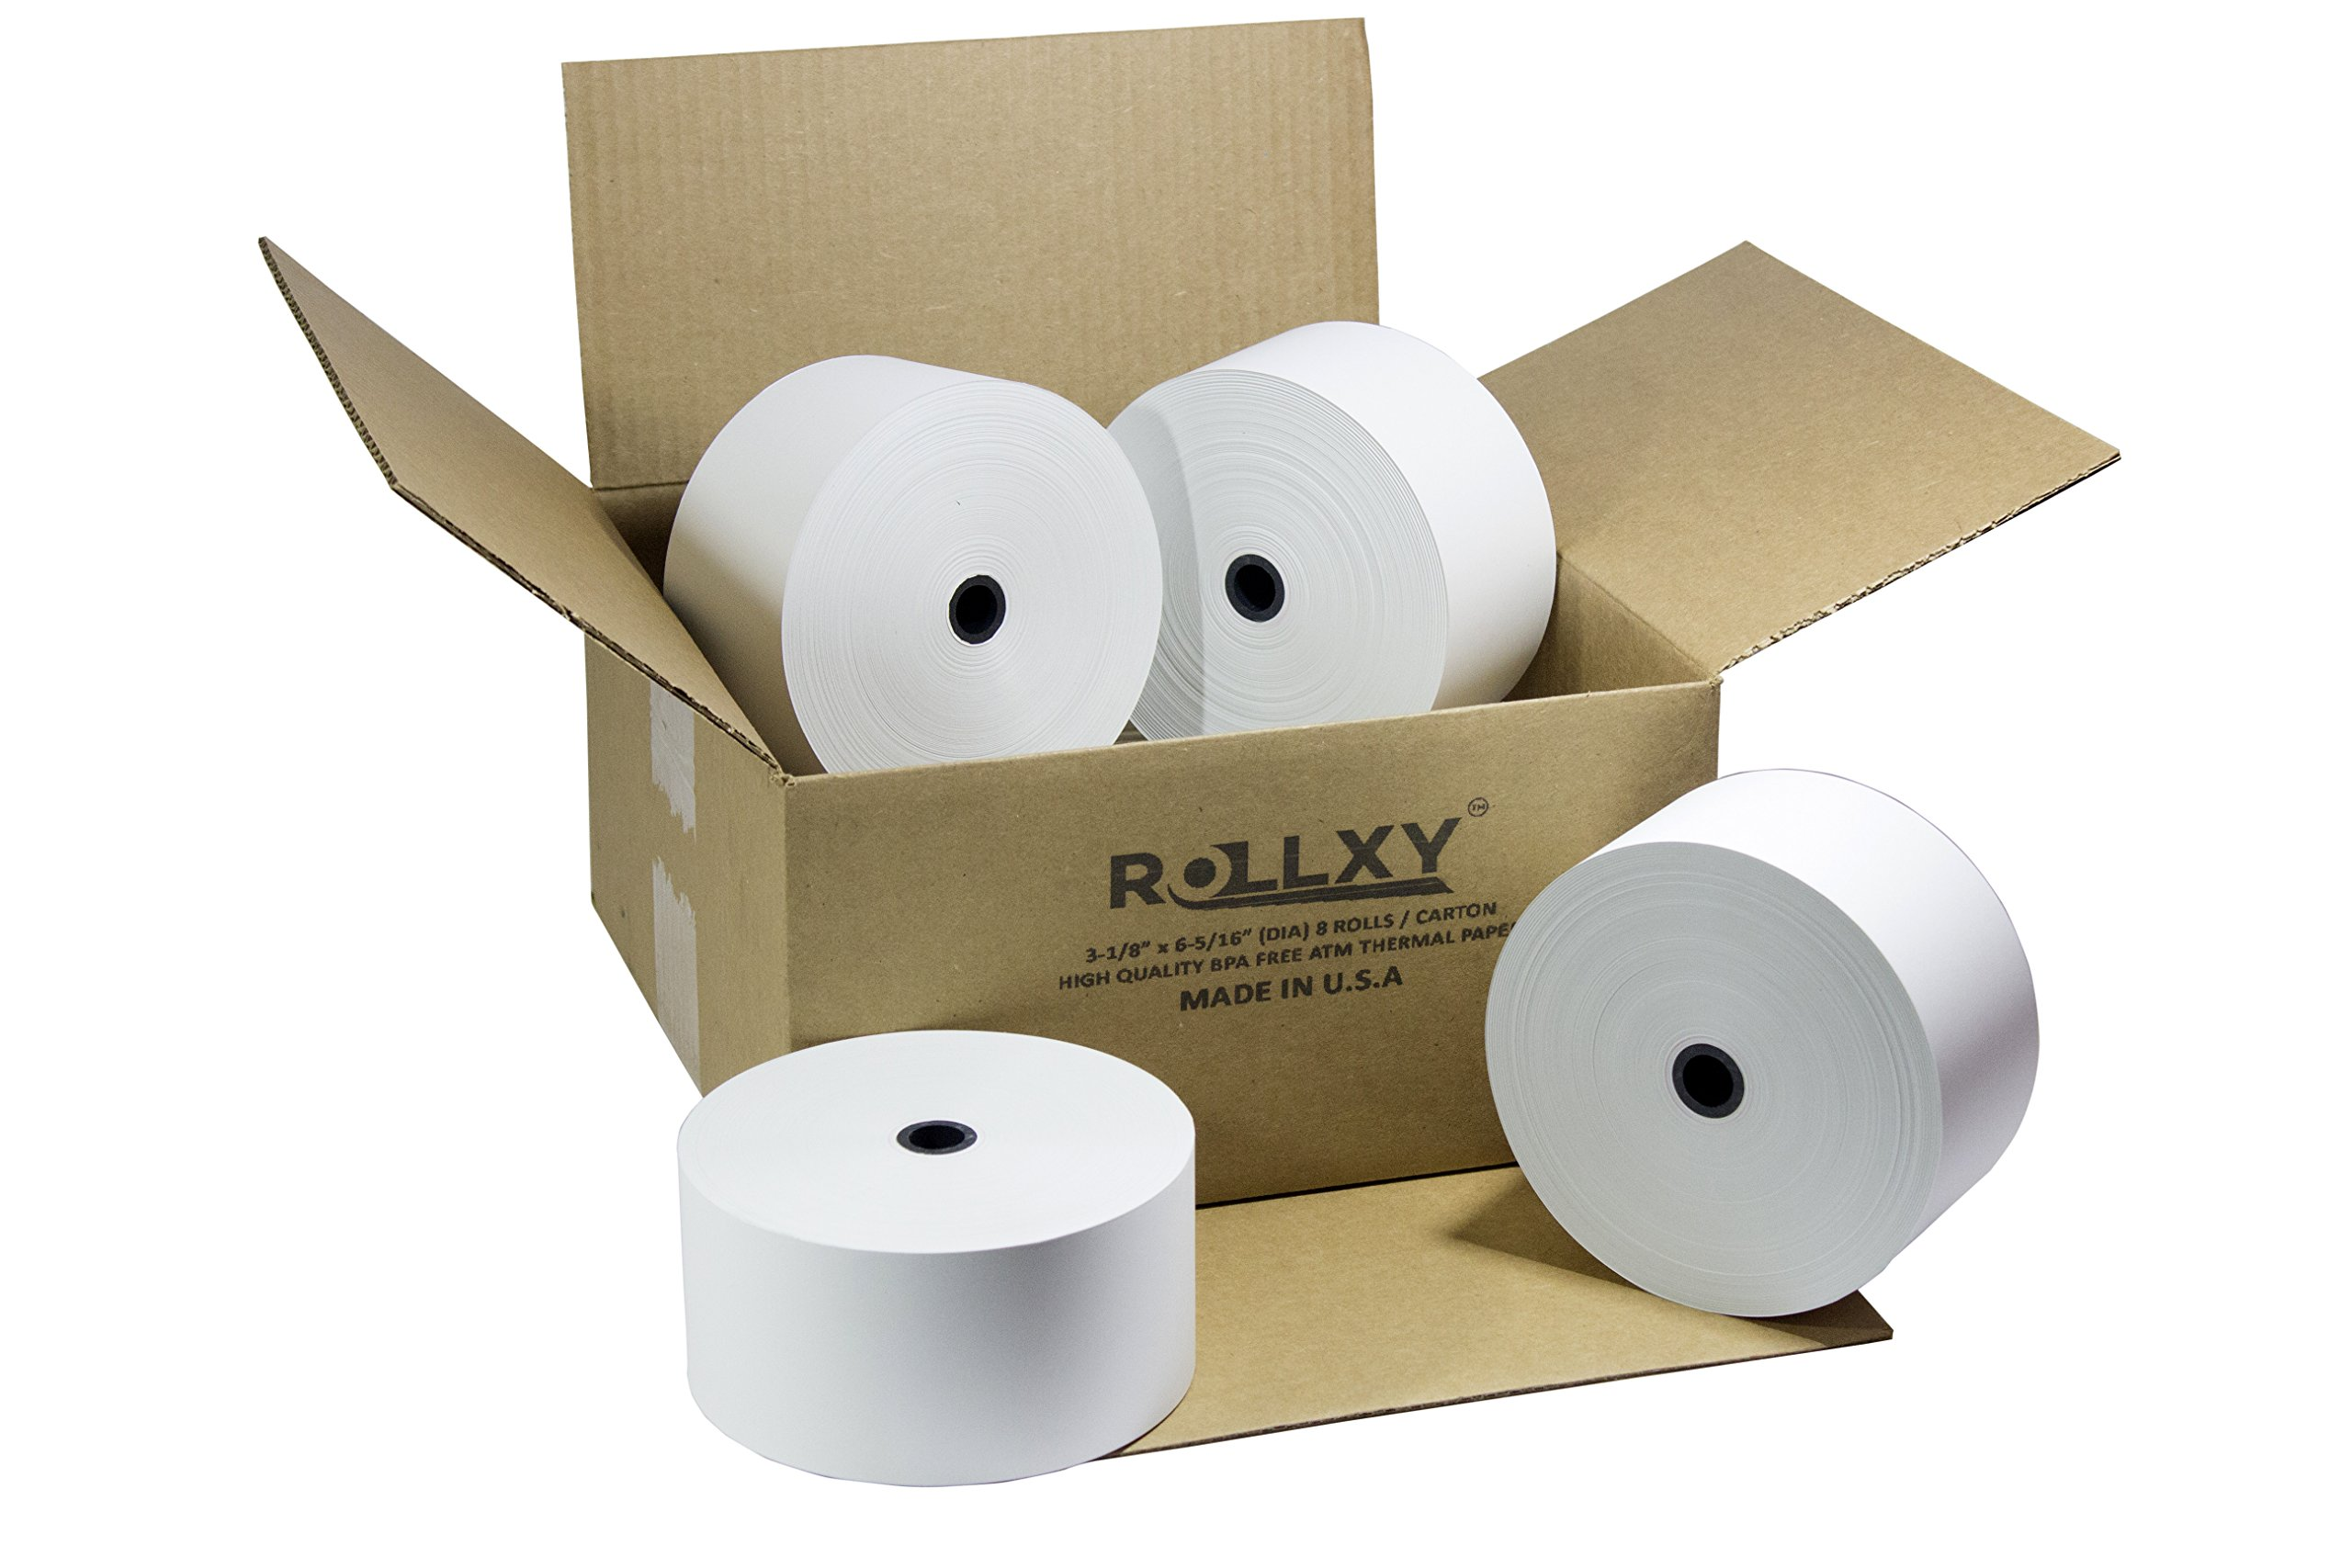 Nautilus Hyosung Halo - 3 1/8'' x 815' Heavy Thermal Paper (8 Rolls) by PosPaperRoll